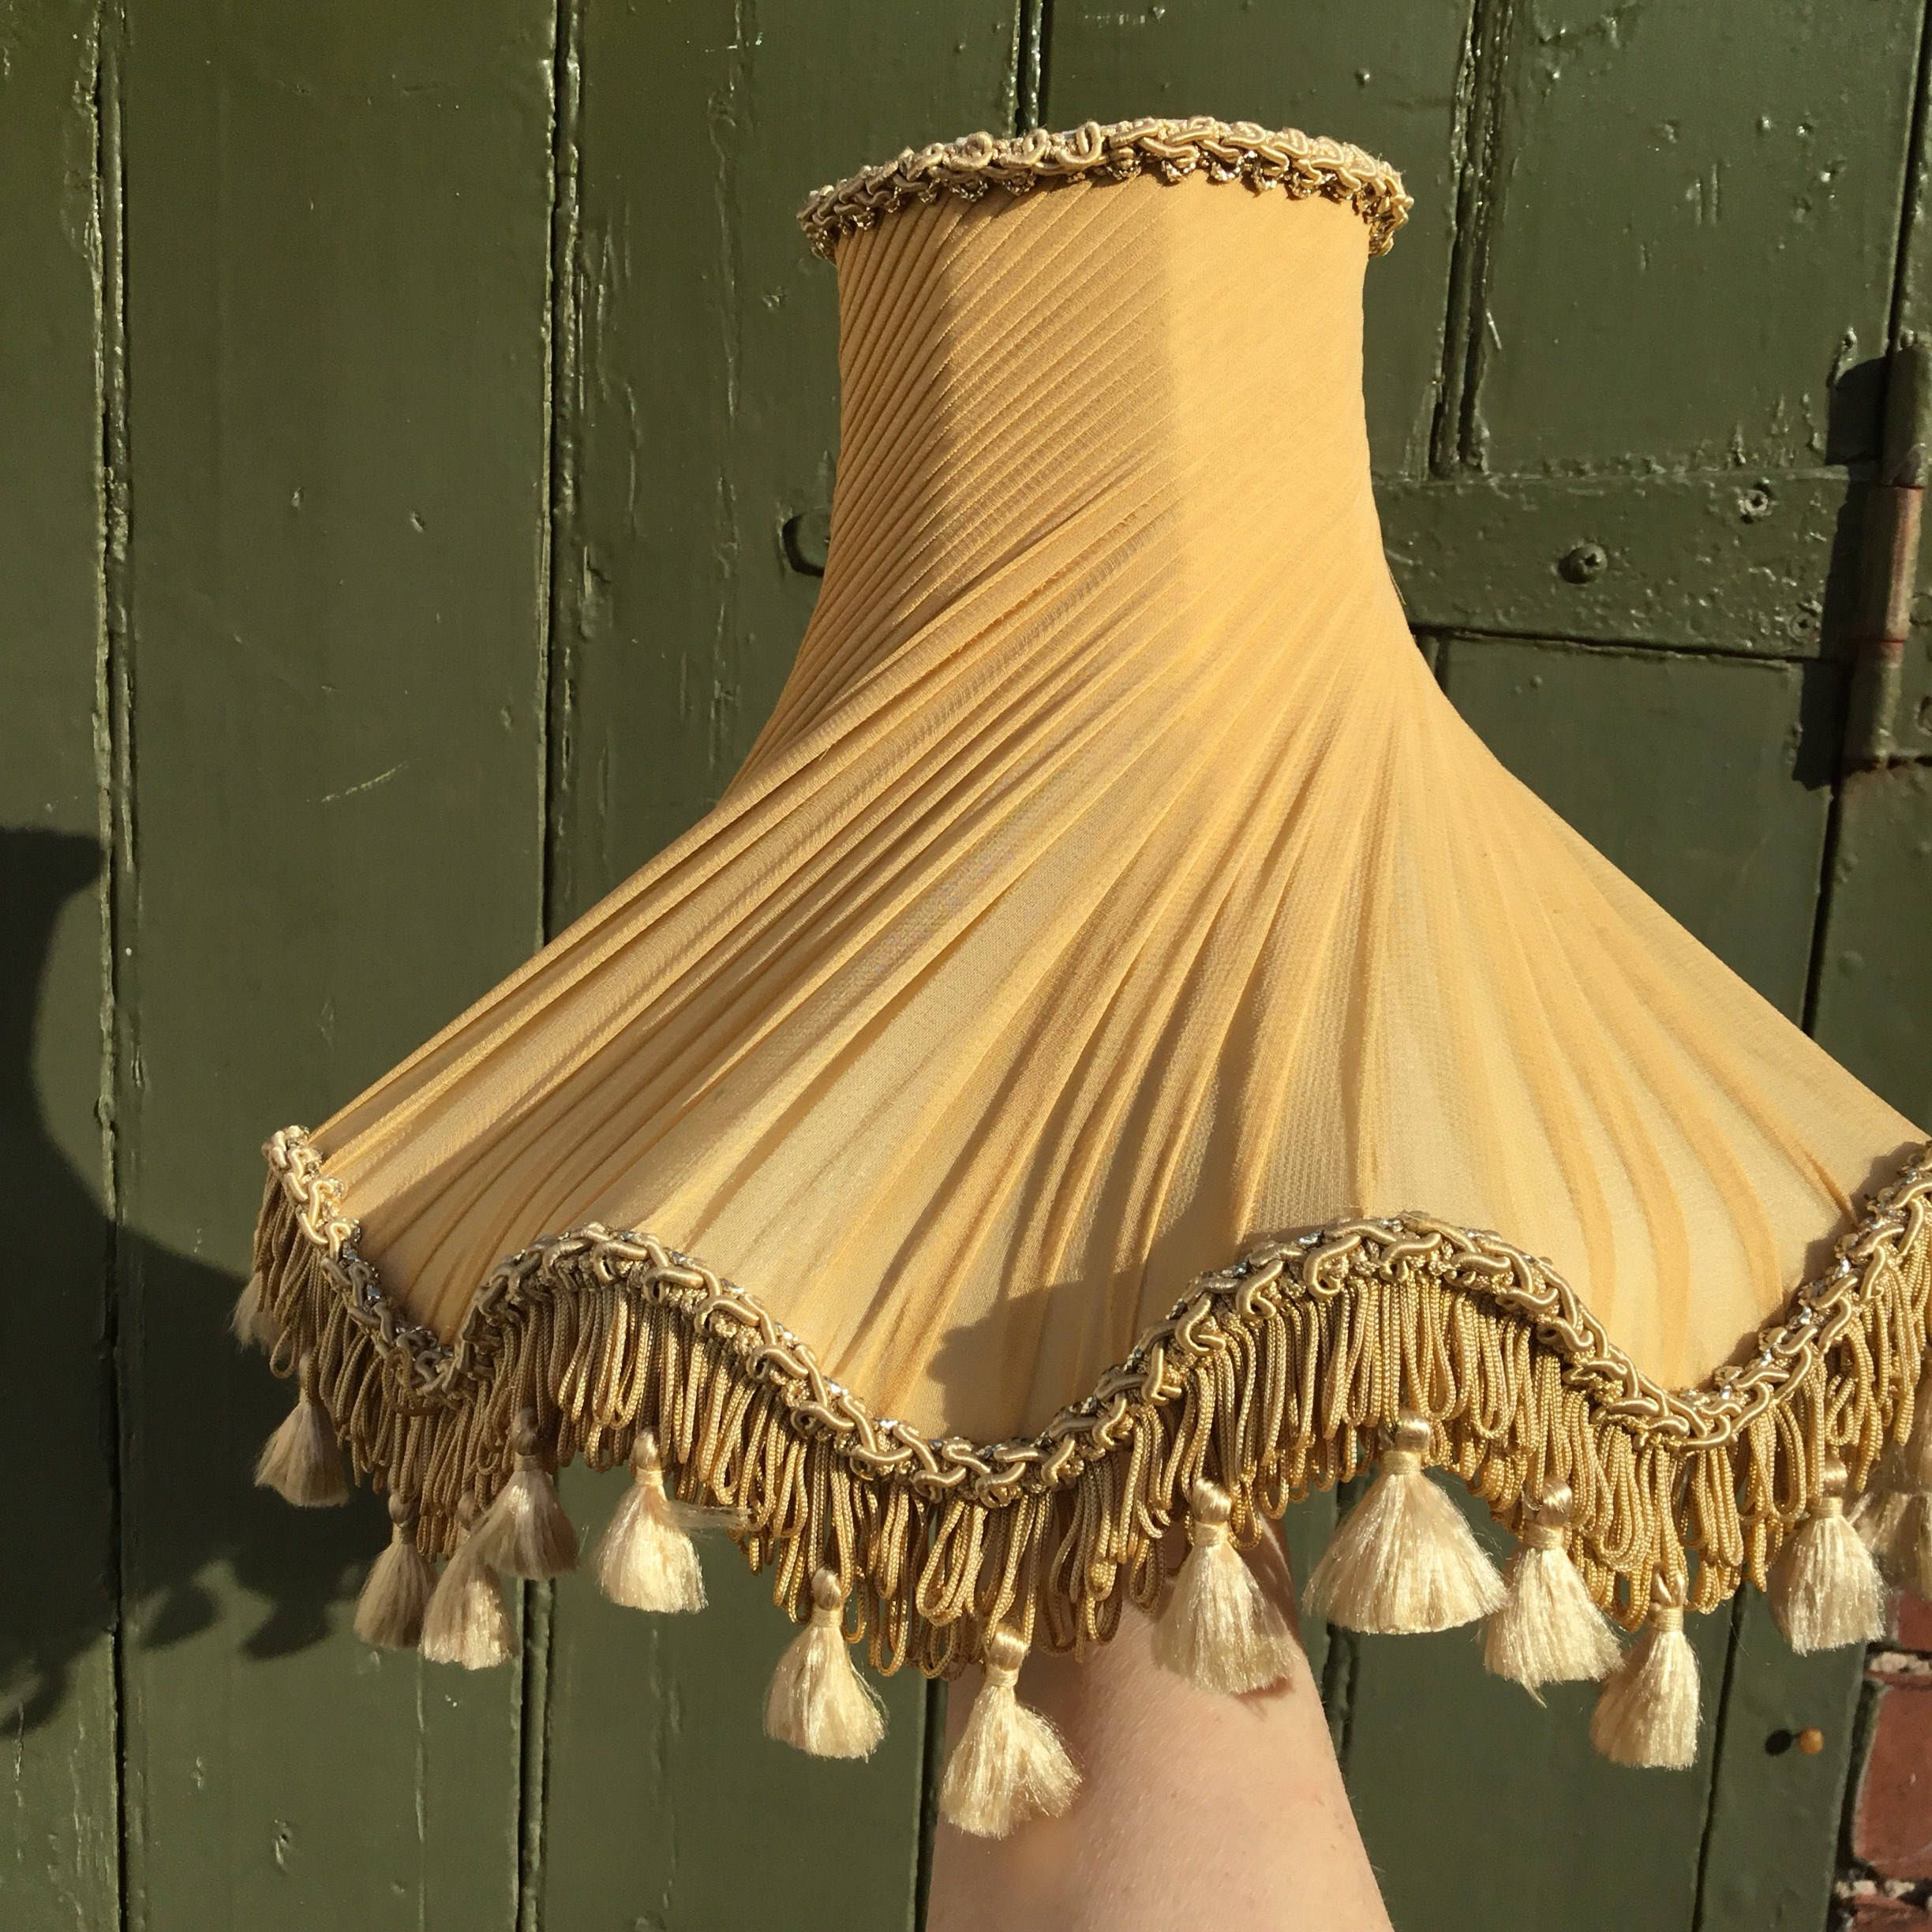 I Love Vintage Lampshades This Is In My Etsy Shop Https Www Etsy Com Uk Listing 596144185 Vintage Lampshade Vintage Lampshades Vintage Home Decor Lamp Shade